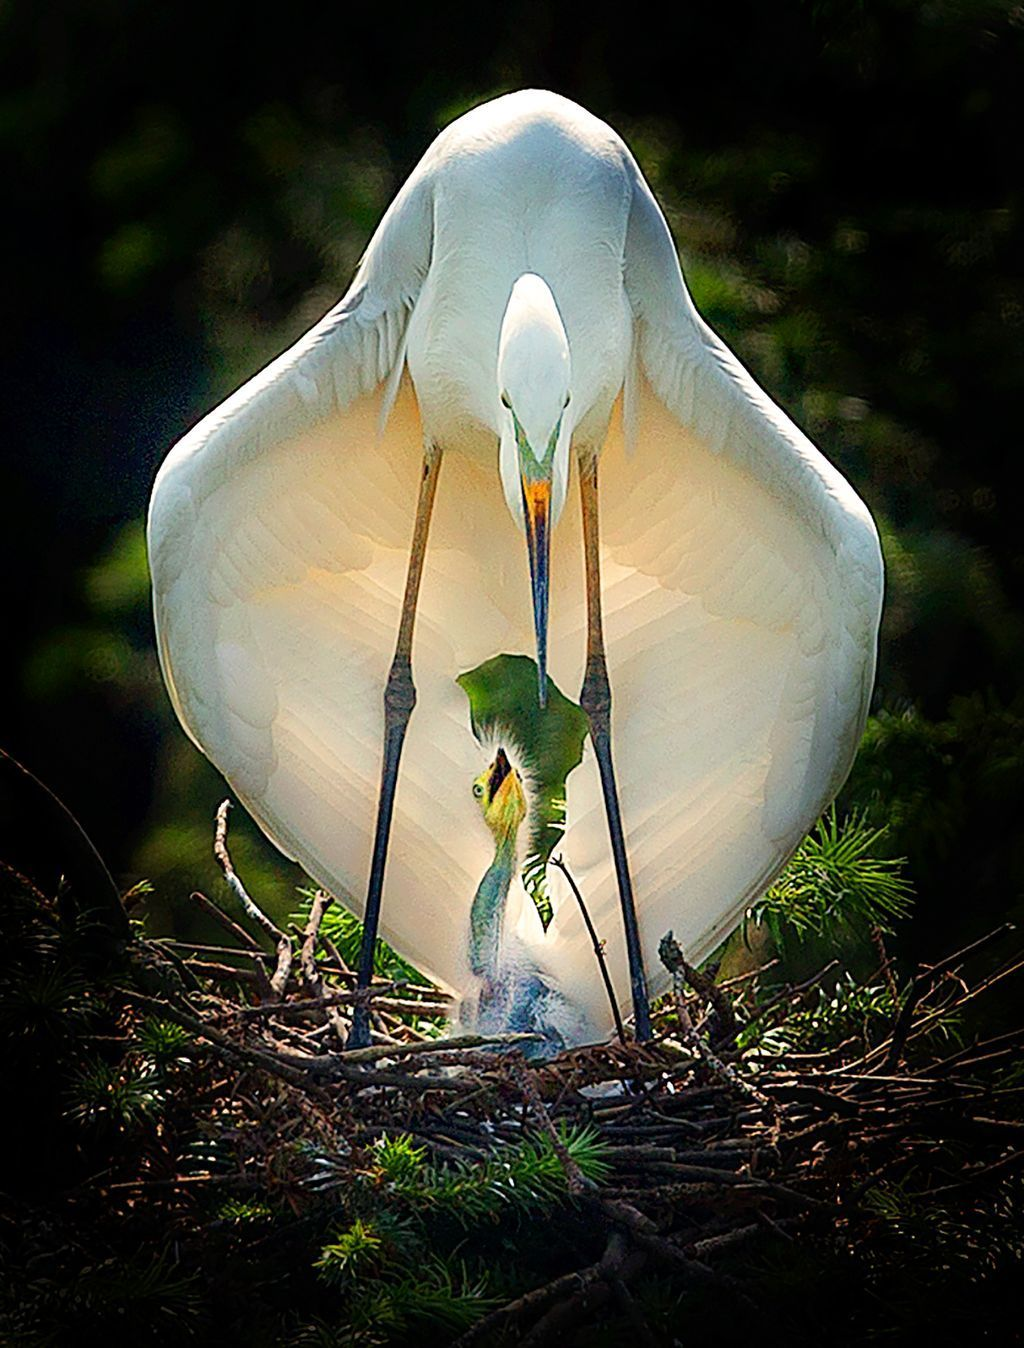 Fuyang Zhou Posted This Picture To National Geographic S Your Shot Photo Community Check It Out Add A Comment Share I Birds Animals Beautiful Nature Animals